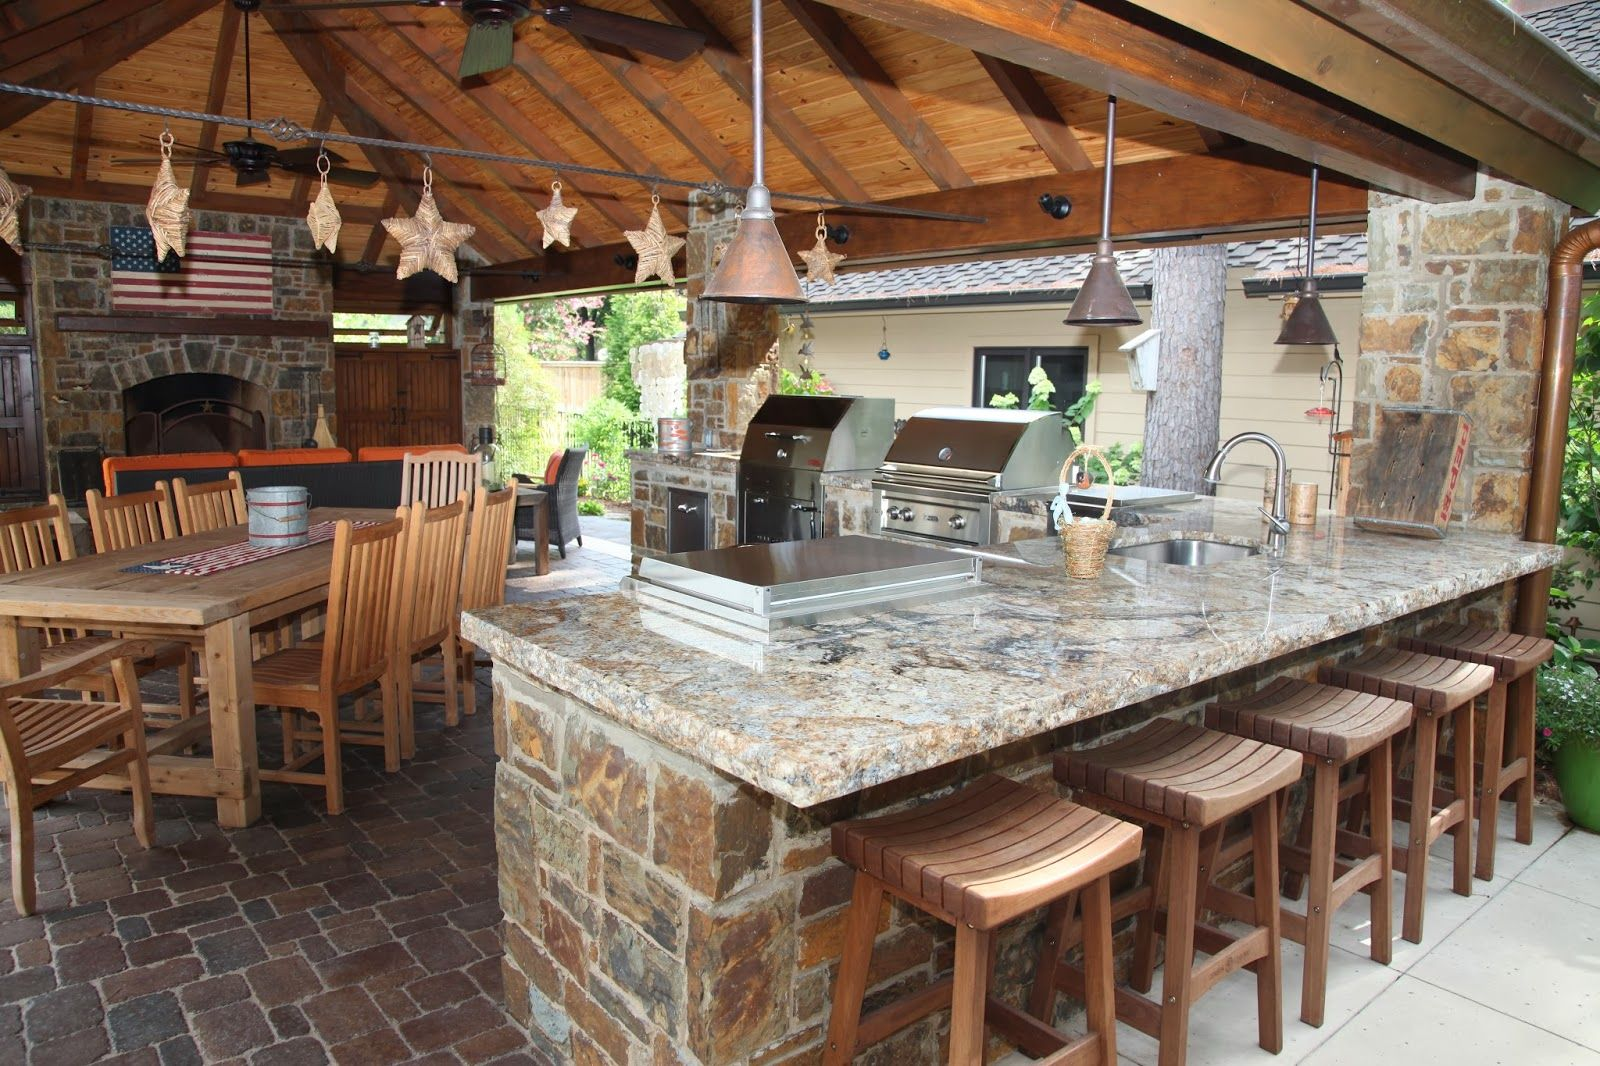 Outdoor Kitchen Designs With Roofs  Outdoor Kitchens In Tulsa Beauteous Outdoor Kitchens And Patios Designs Inspiration